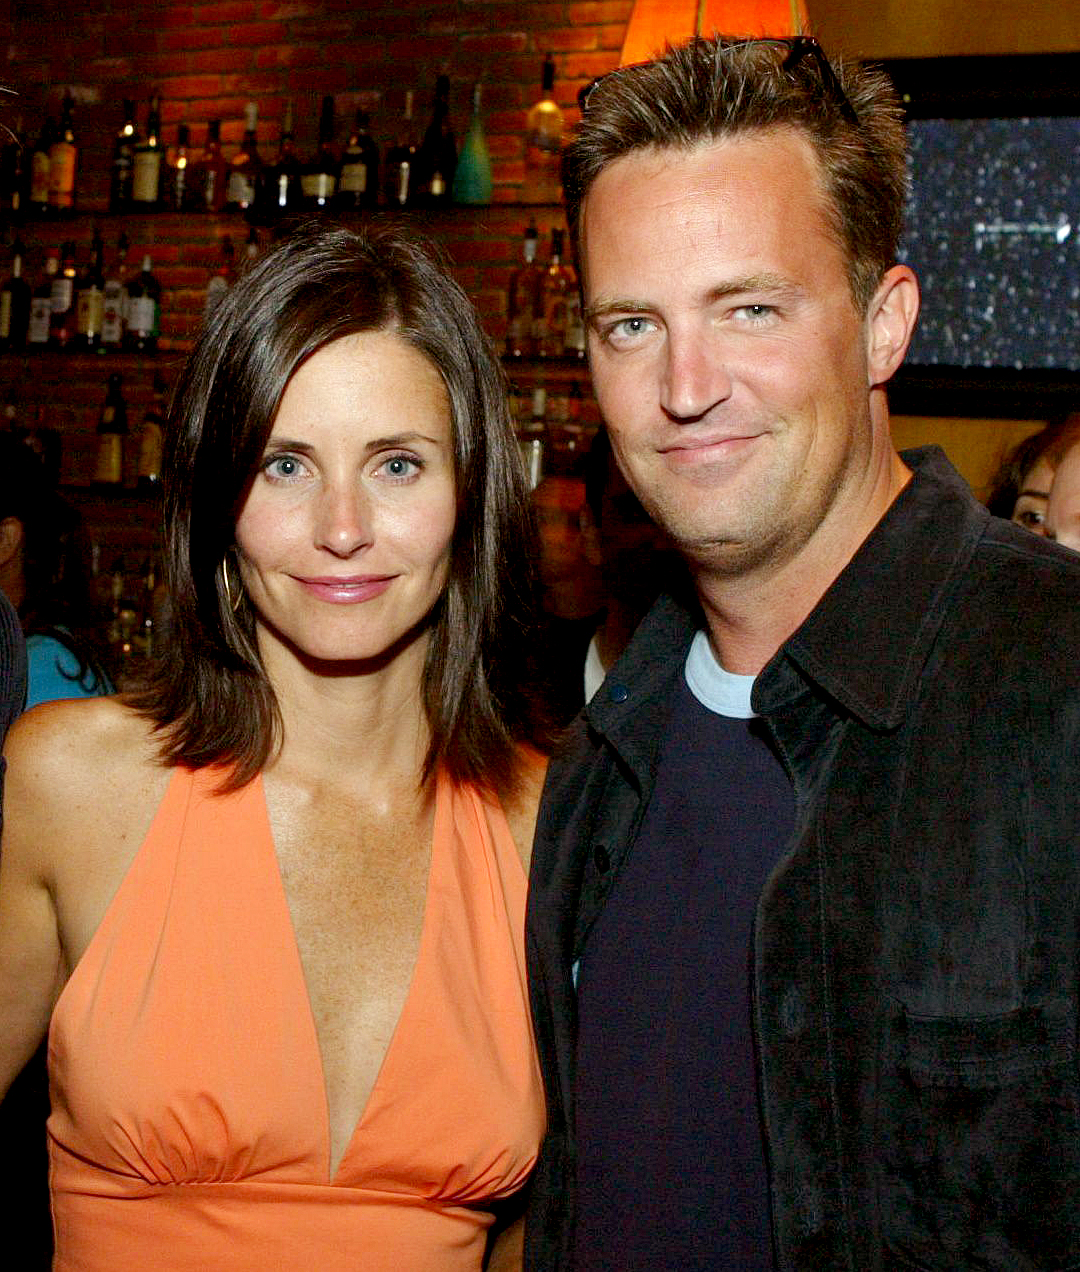 Matthew-Perry-Has-Never-Fully-Been-Able-to-Get-Over-Courteney-Cox